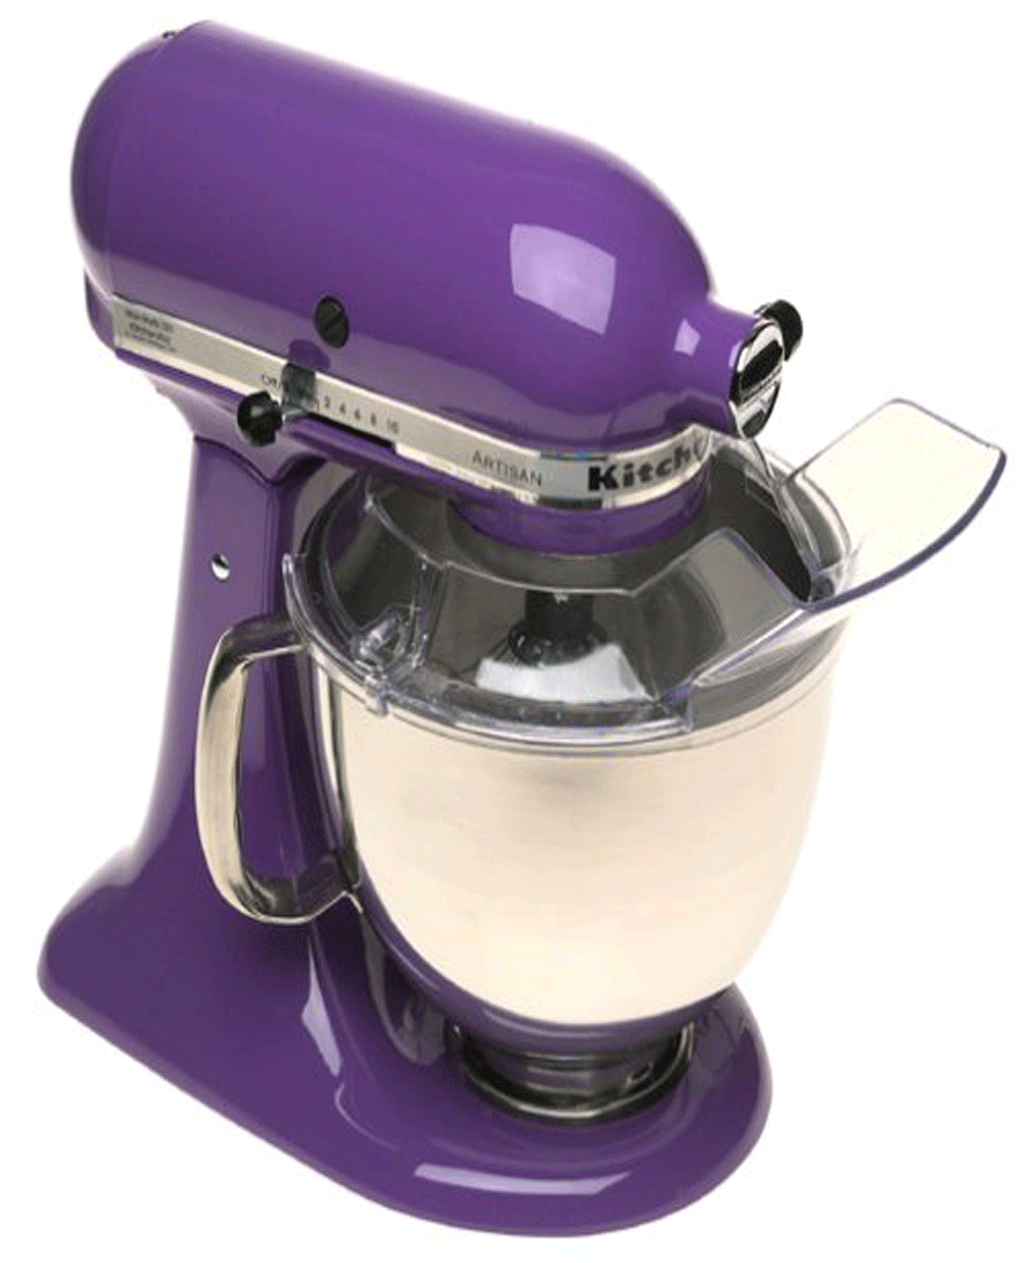 Grape KitchenAid on Amazon.